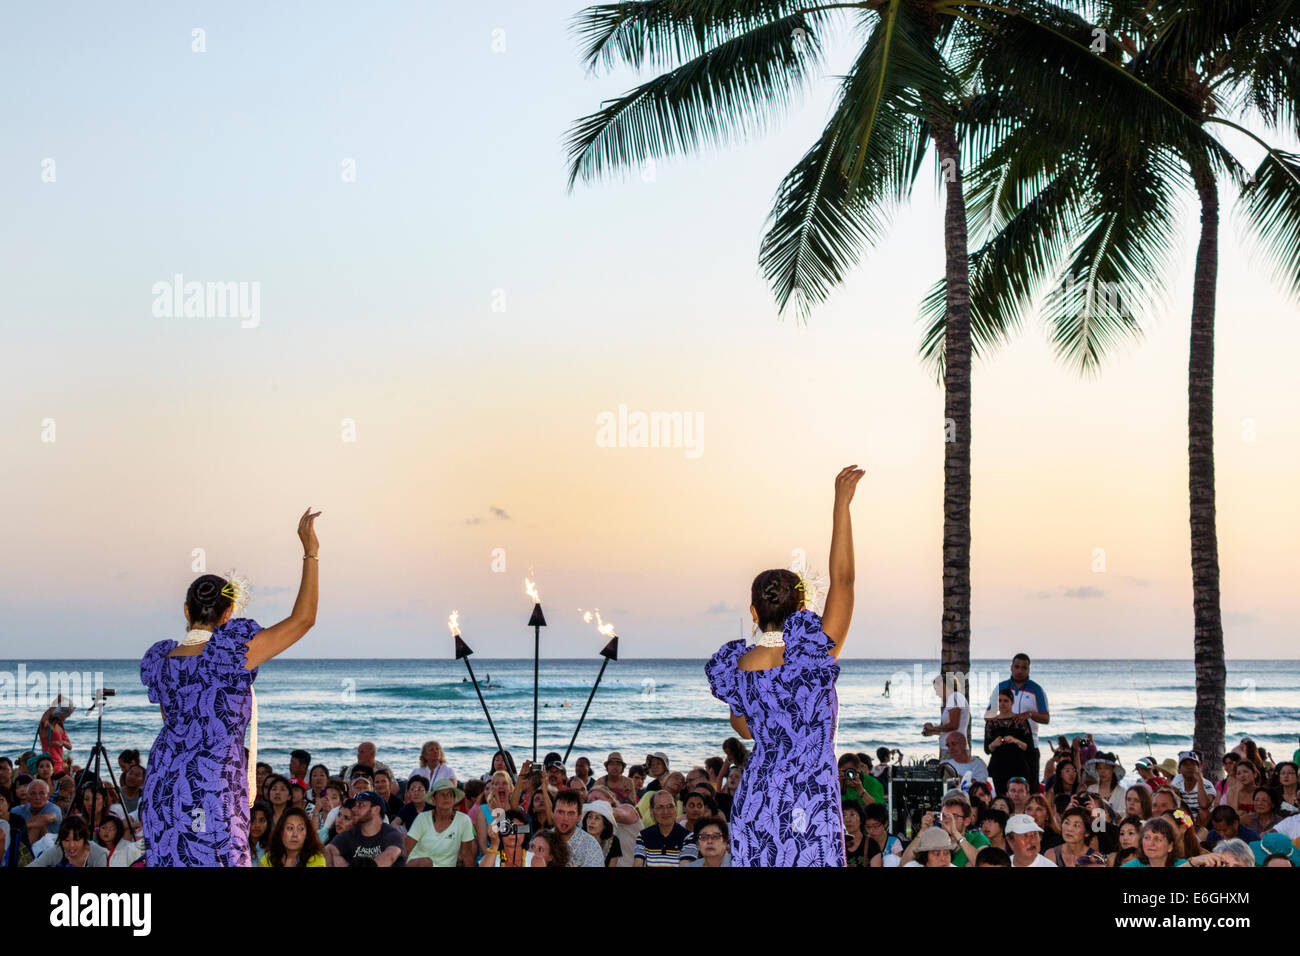 Hawaii Hawaiian Honolulu Waikiki Beach Kuhio Beach Park Hyatt Regency Hula Show free event audience watching Pacific - Stock Image